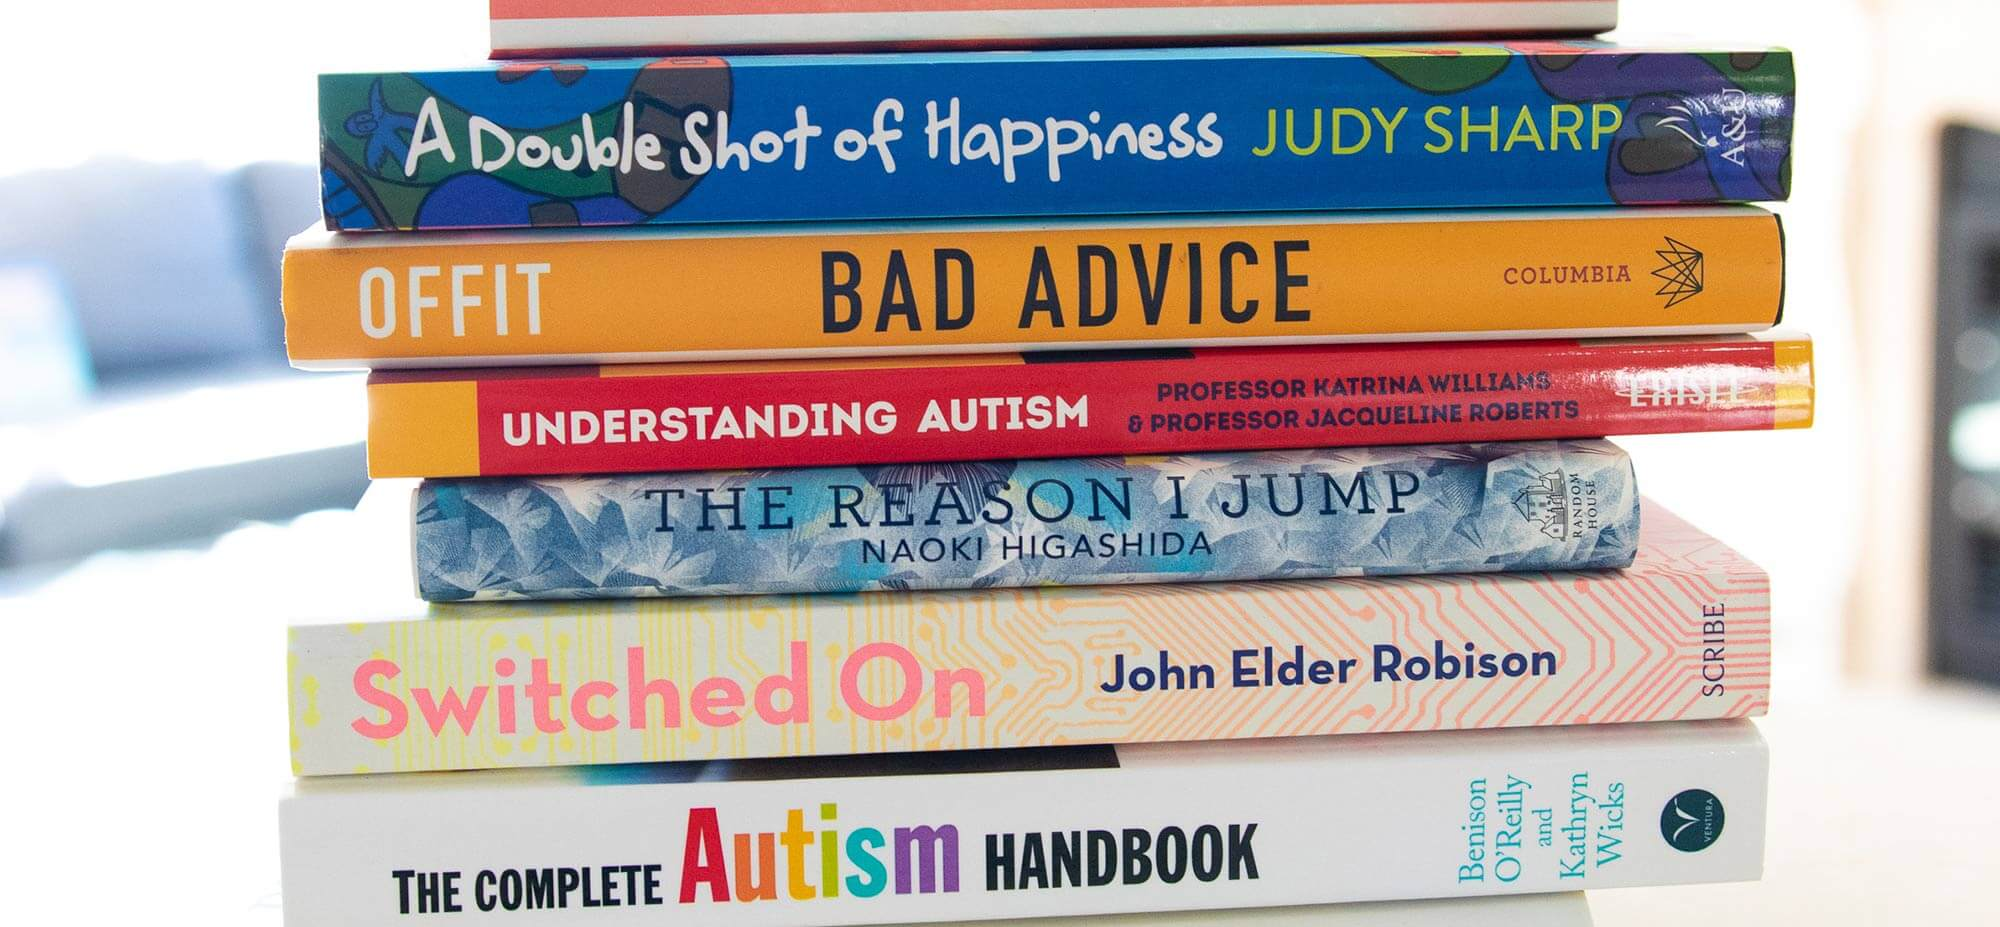 Stack of books about autism with spines showing